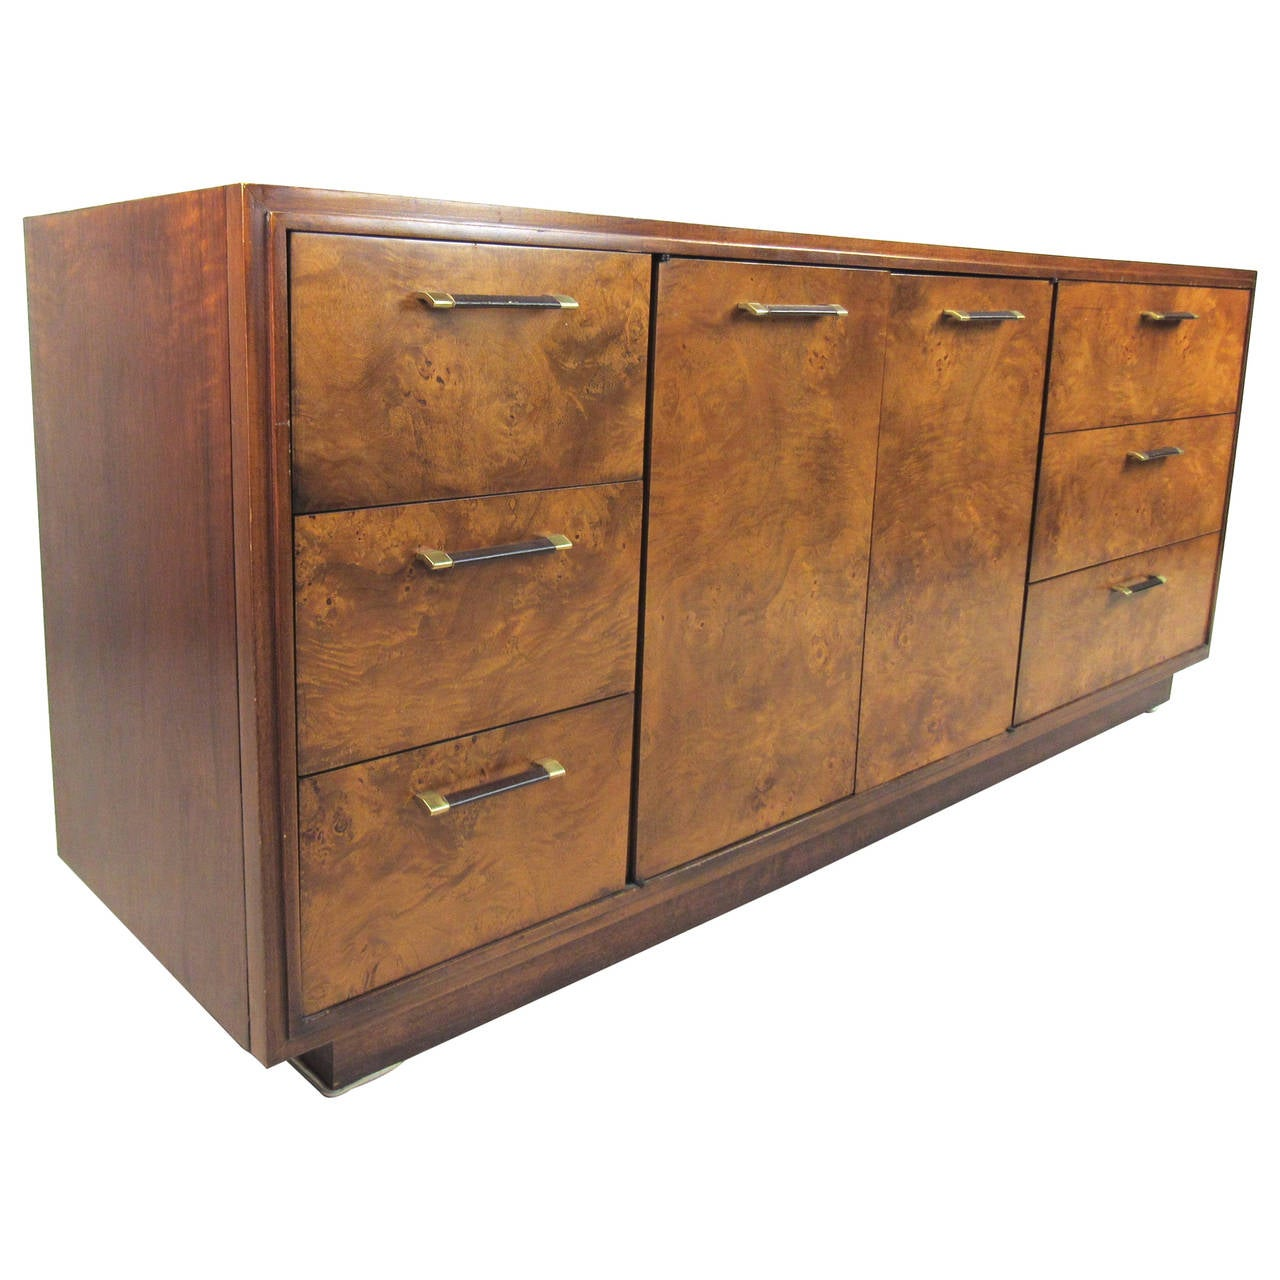 stylish midcentury burlwood bedroom dresser for sale at stdibs - stylish midcentury burlwood bedroom dresser